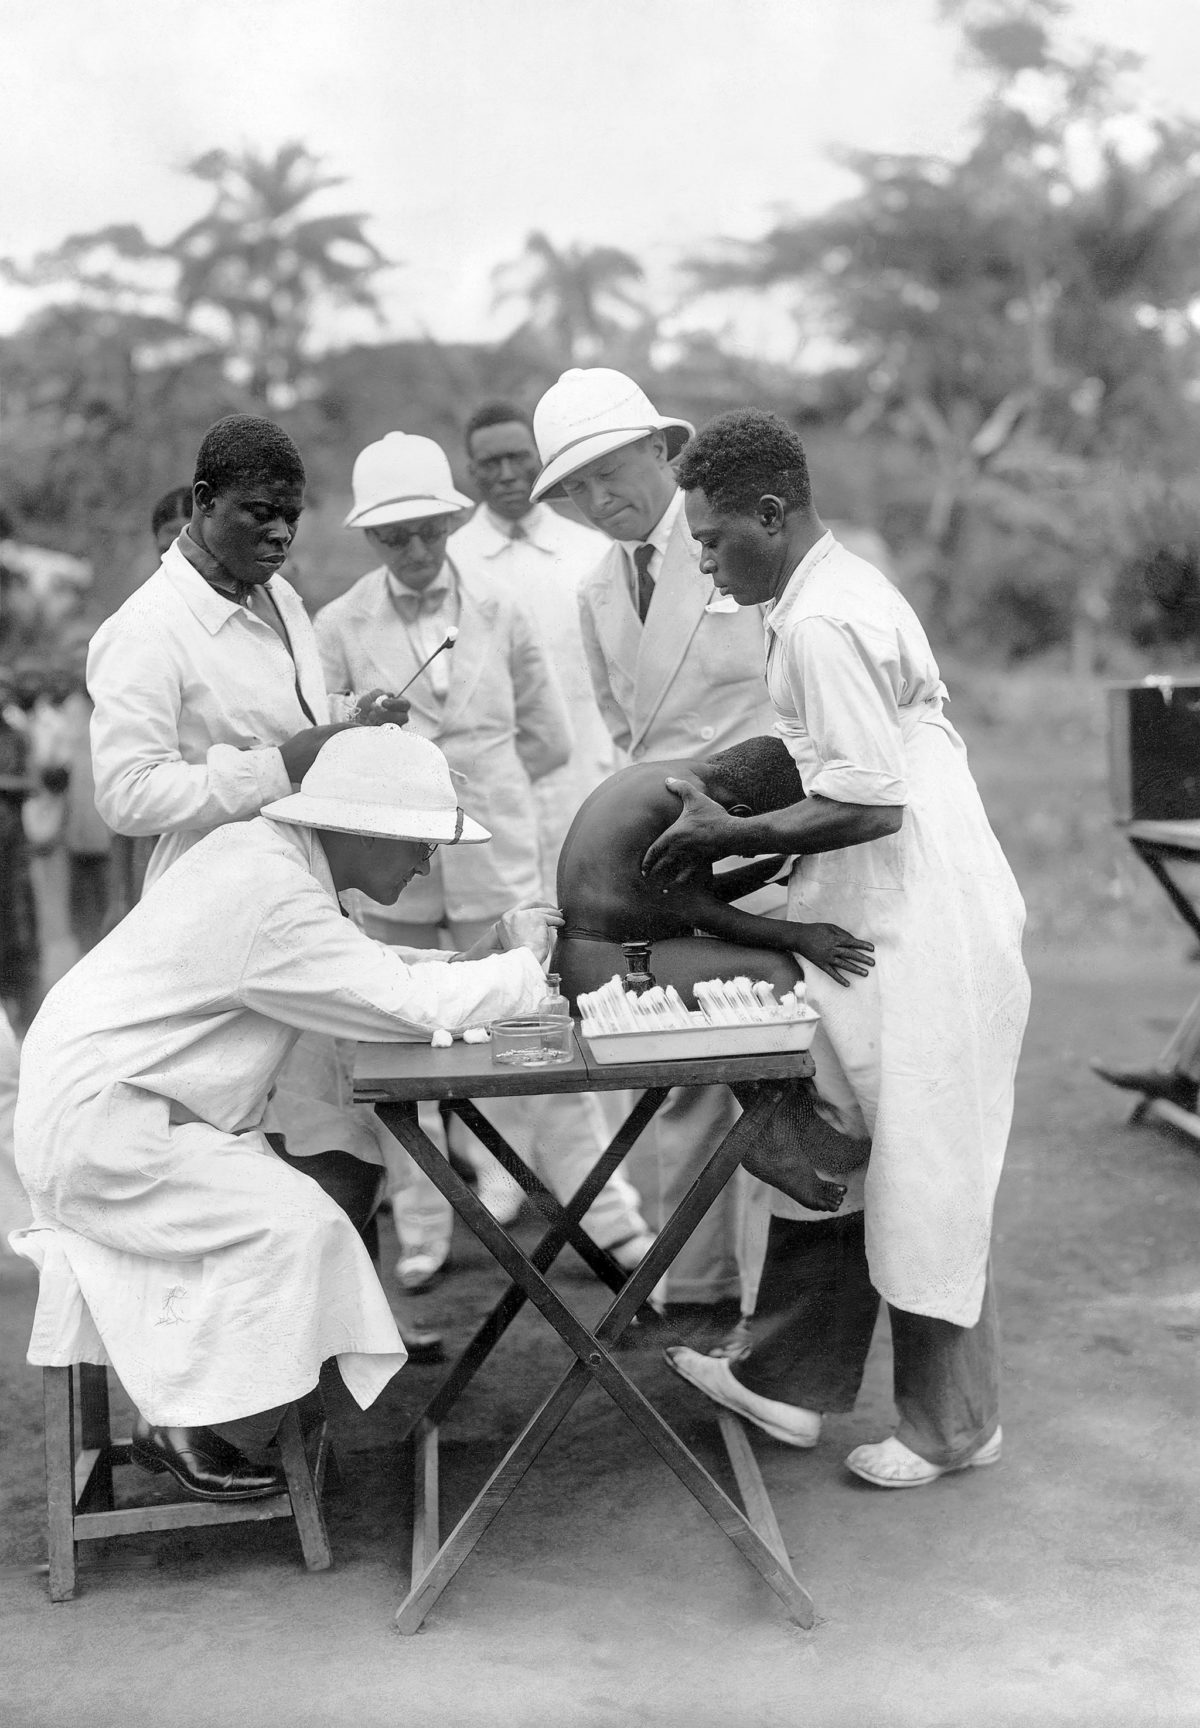 1933: French-Cameroon: European doctor inspects African boy for sleeping sickness and lumbar puncture.